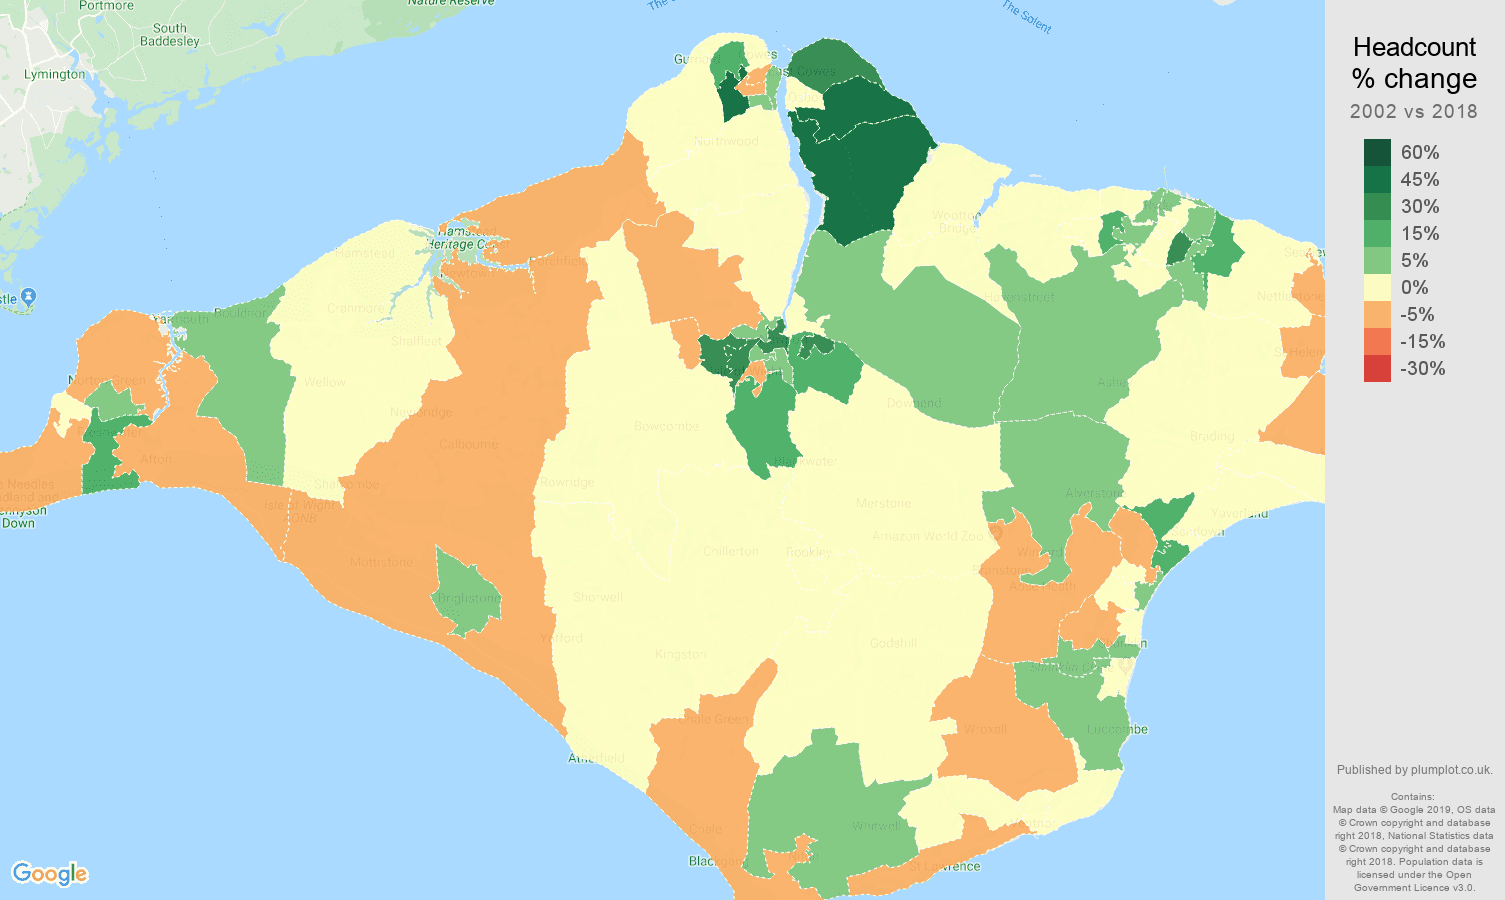 Isle of Wight headcount change map